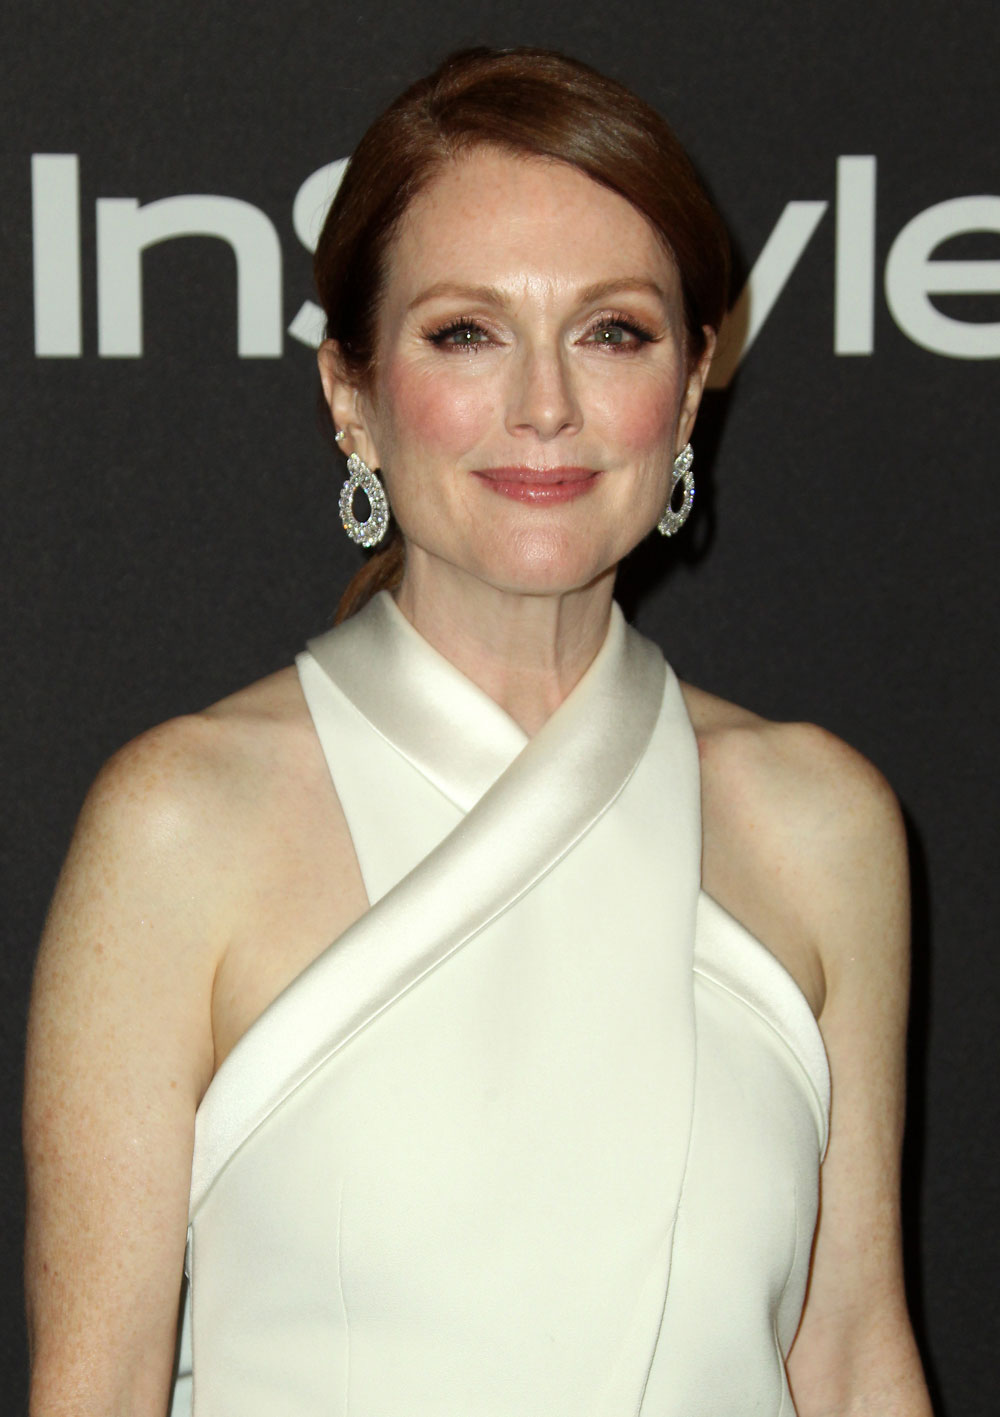 Julianne Moore in Givenchy at the Globes: scrolldown fug?